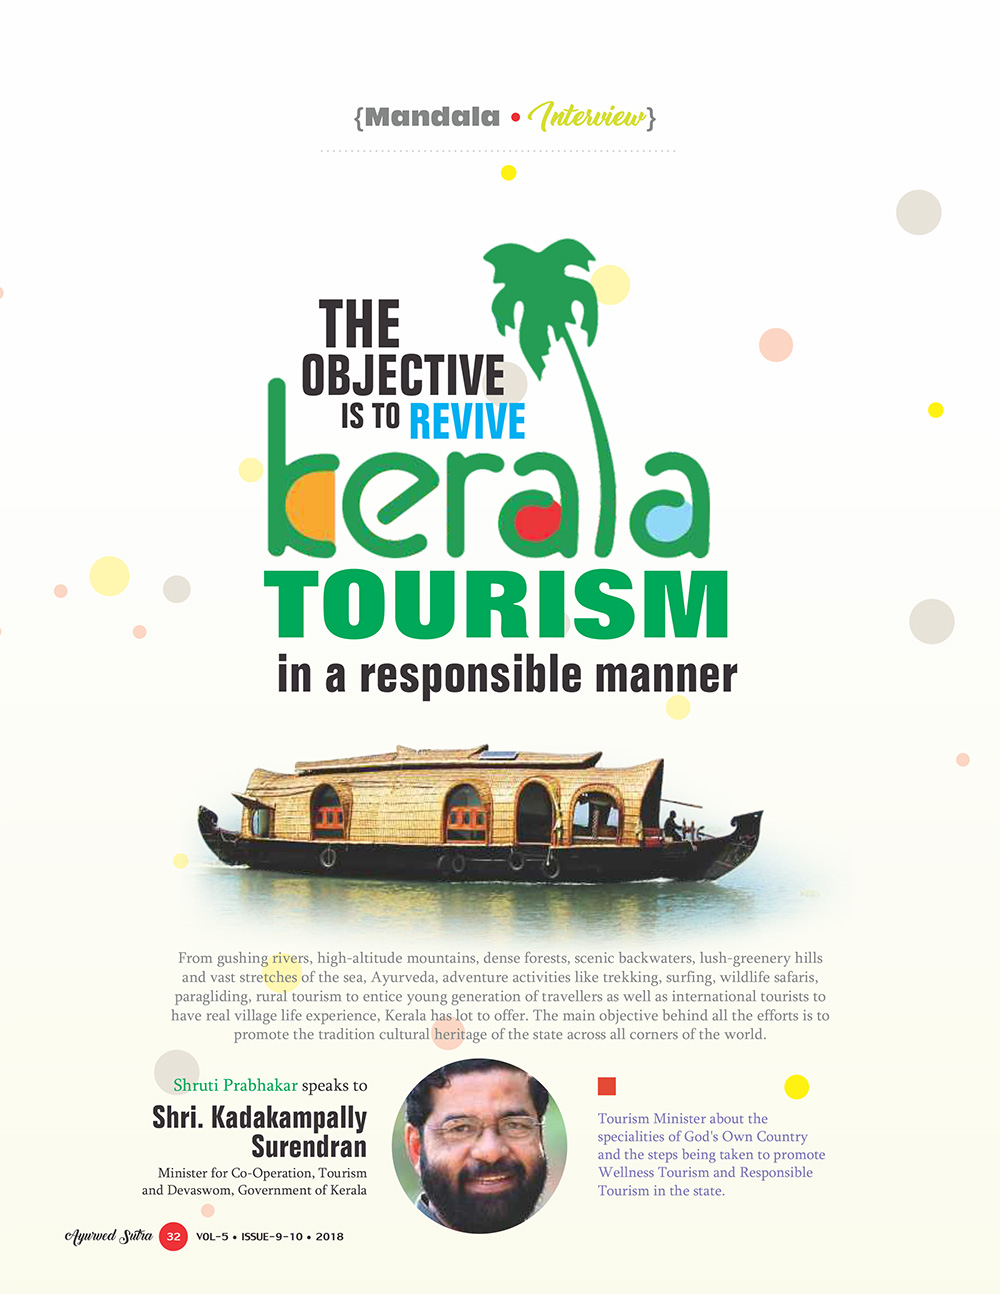 Ayurvedsutra Vol 05 issue 09 10 34 - Promote Kerala tourism in a responsible manner